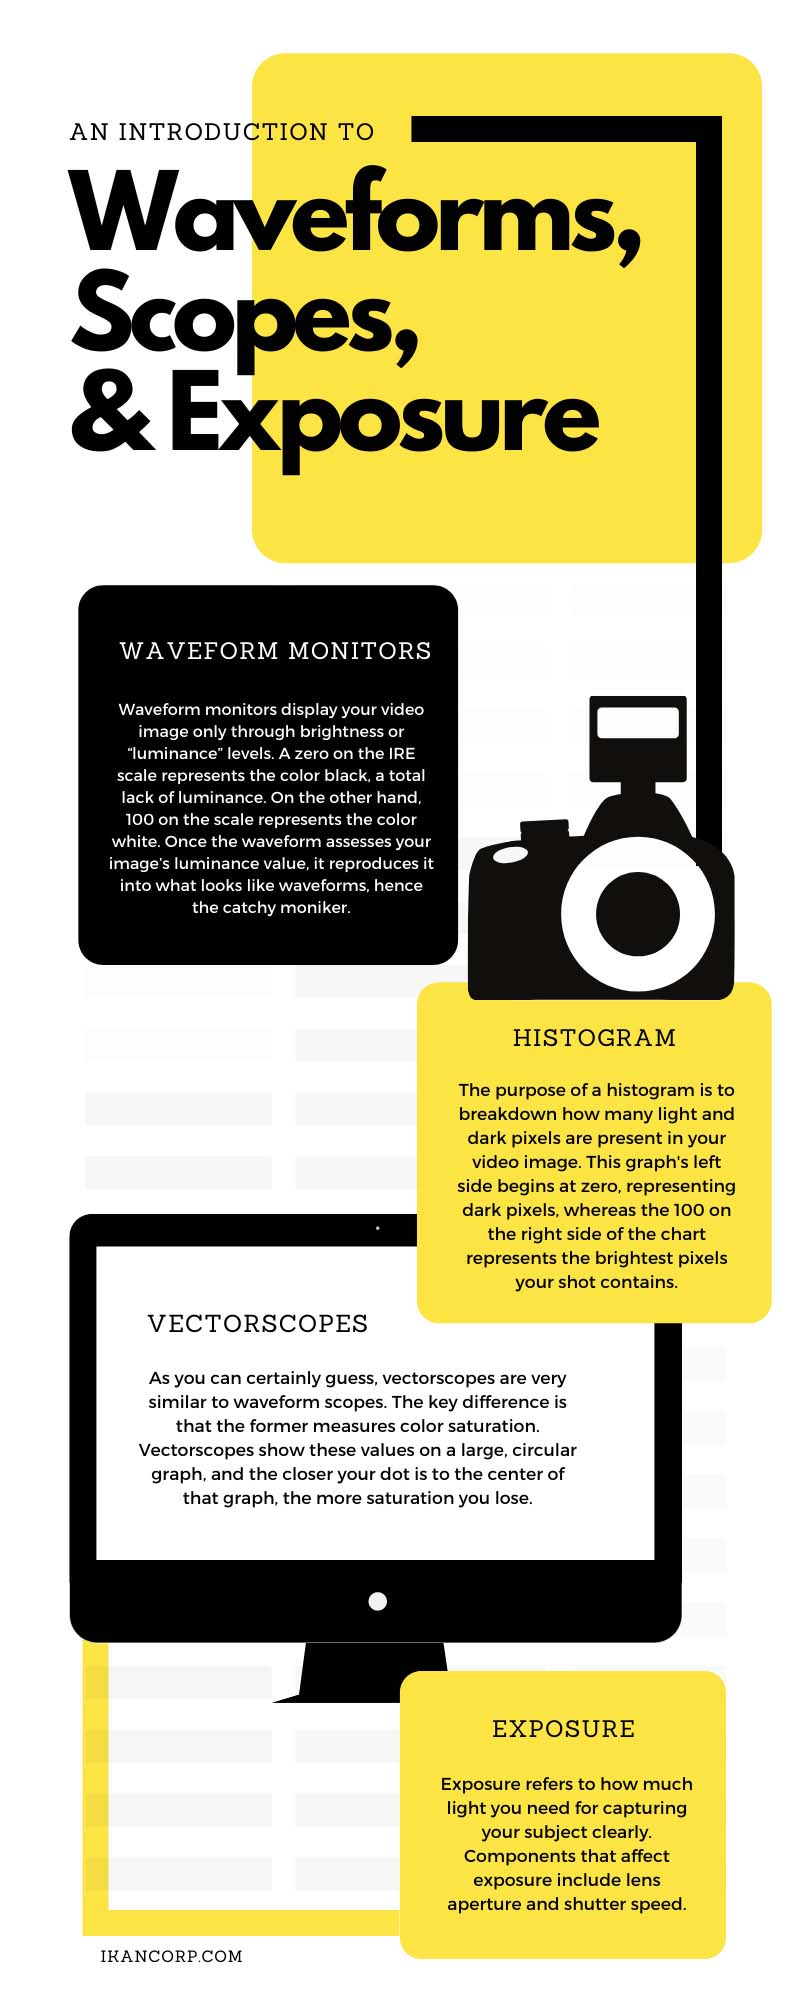 An Introduction To Waveforms, Scopes, and Exposure